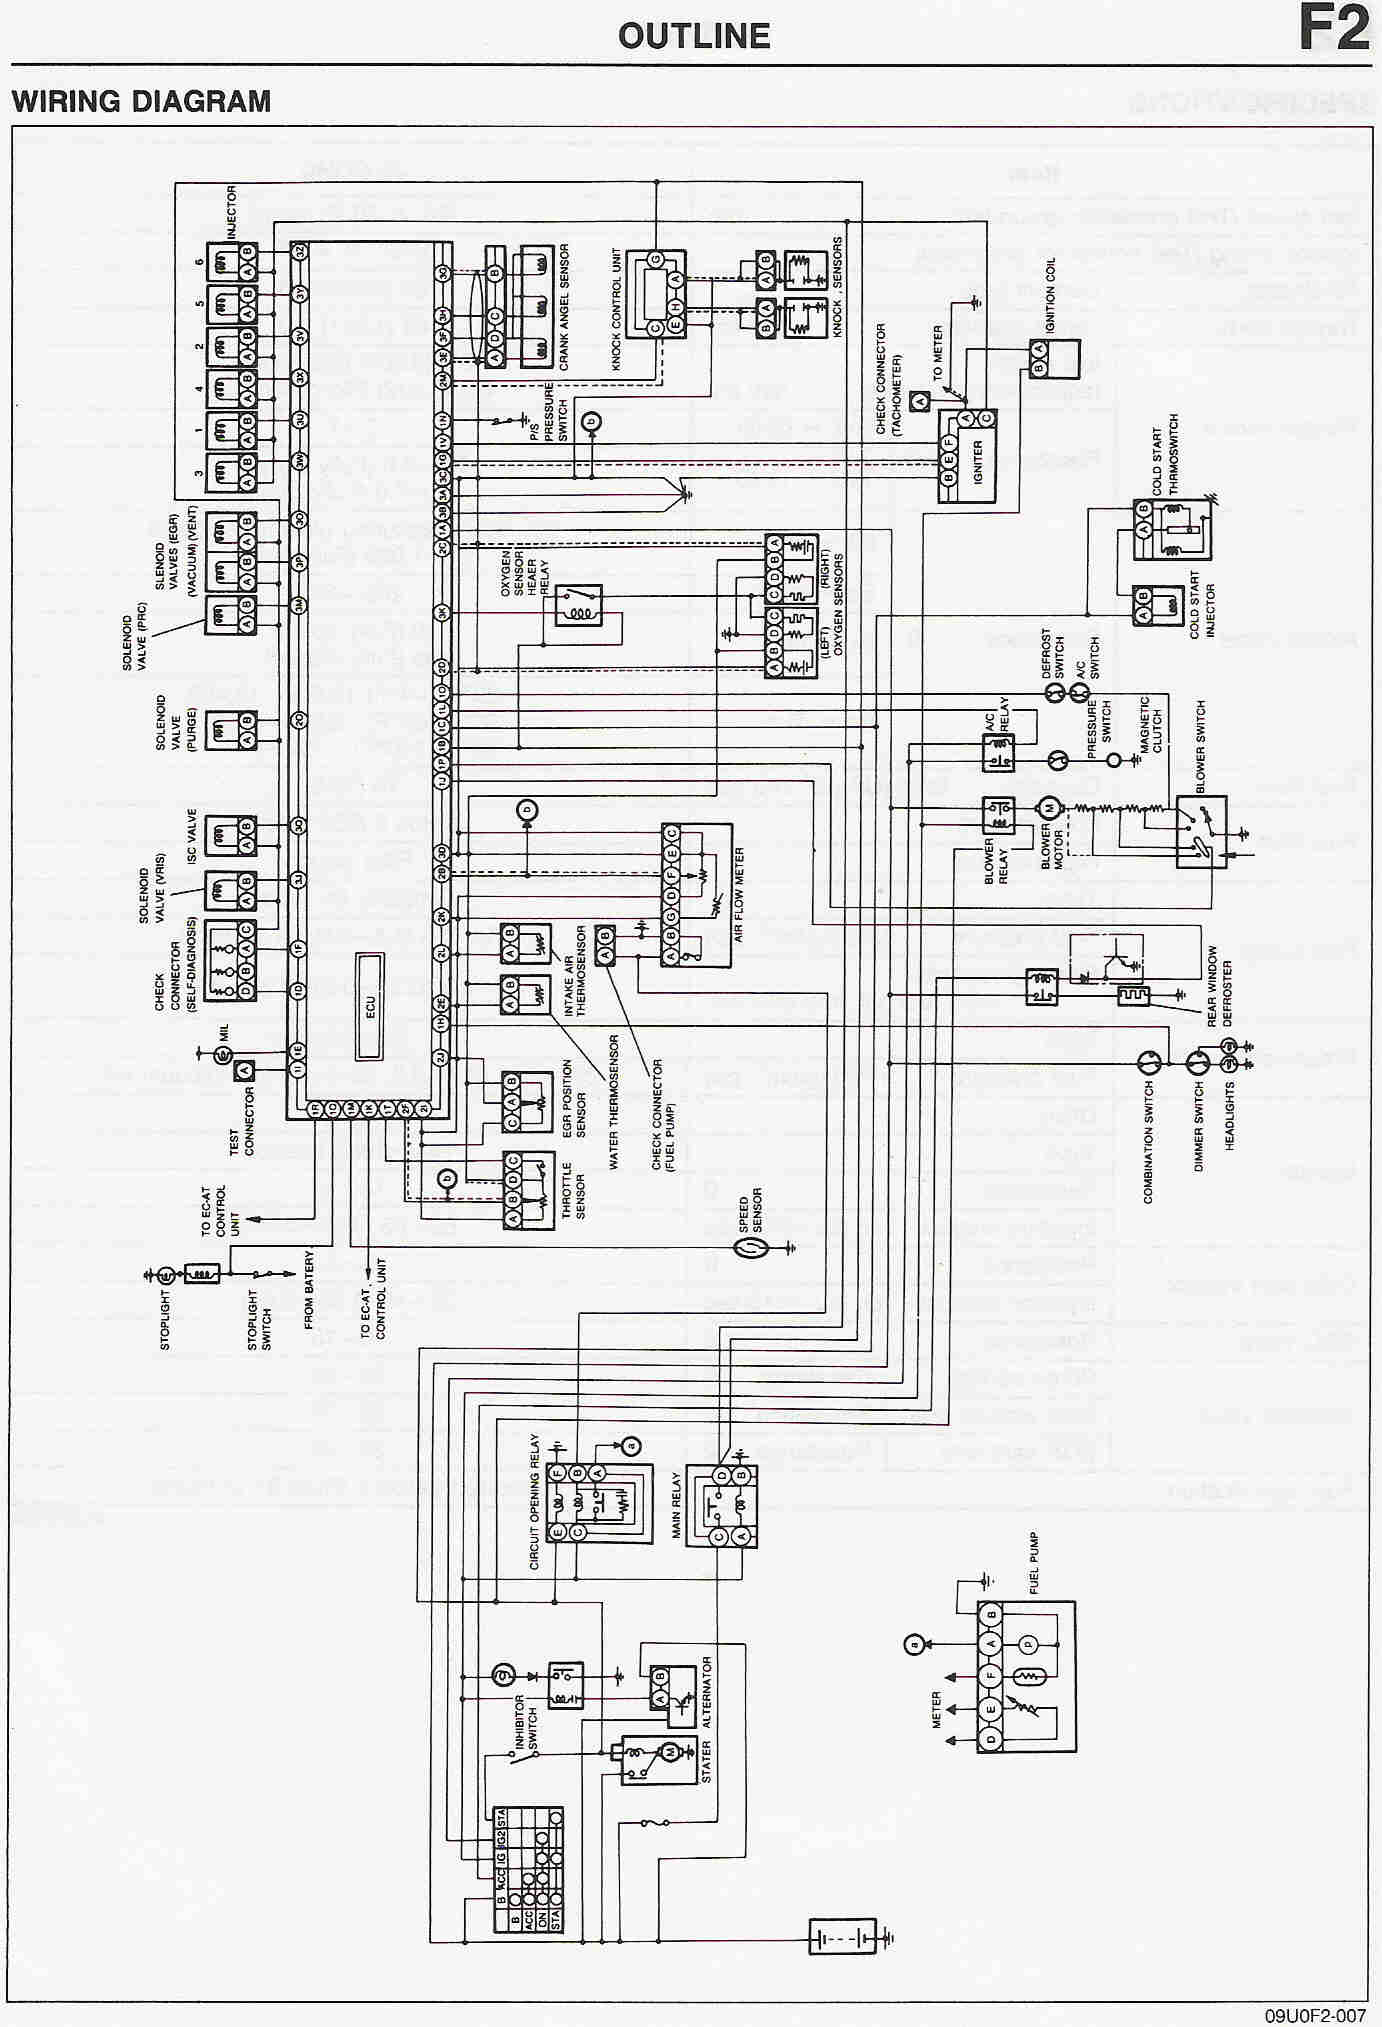 Mazda 929 Wiring Diagram - Wiring Diagrams Lol on mazda 6 wiring diagram, mazda 626 door, mazda 626 firing order, mazda 626 alternator diagram, mazda 626 vacuum diagram, mazda 626 oil pump, mazda 626 ignition switch, mazda 626 radio, mazda protege wiring diagram, mazda b2200 wiring diagram, mazda 626 parts list, mazda 626 ac diagram, mazda 626 service manual, mazda 626 timing, mazda 626 cooling system, mazda wiring diagrams online, mazda 626 troubleshooting, mazda 626 fuse, mazda 3 wiring diagram, mazda alternator wiring,